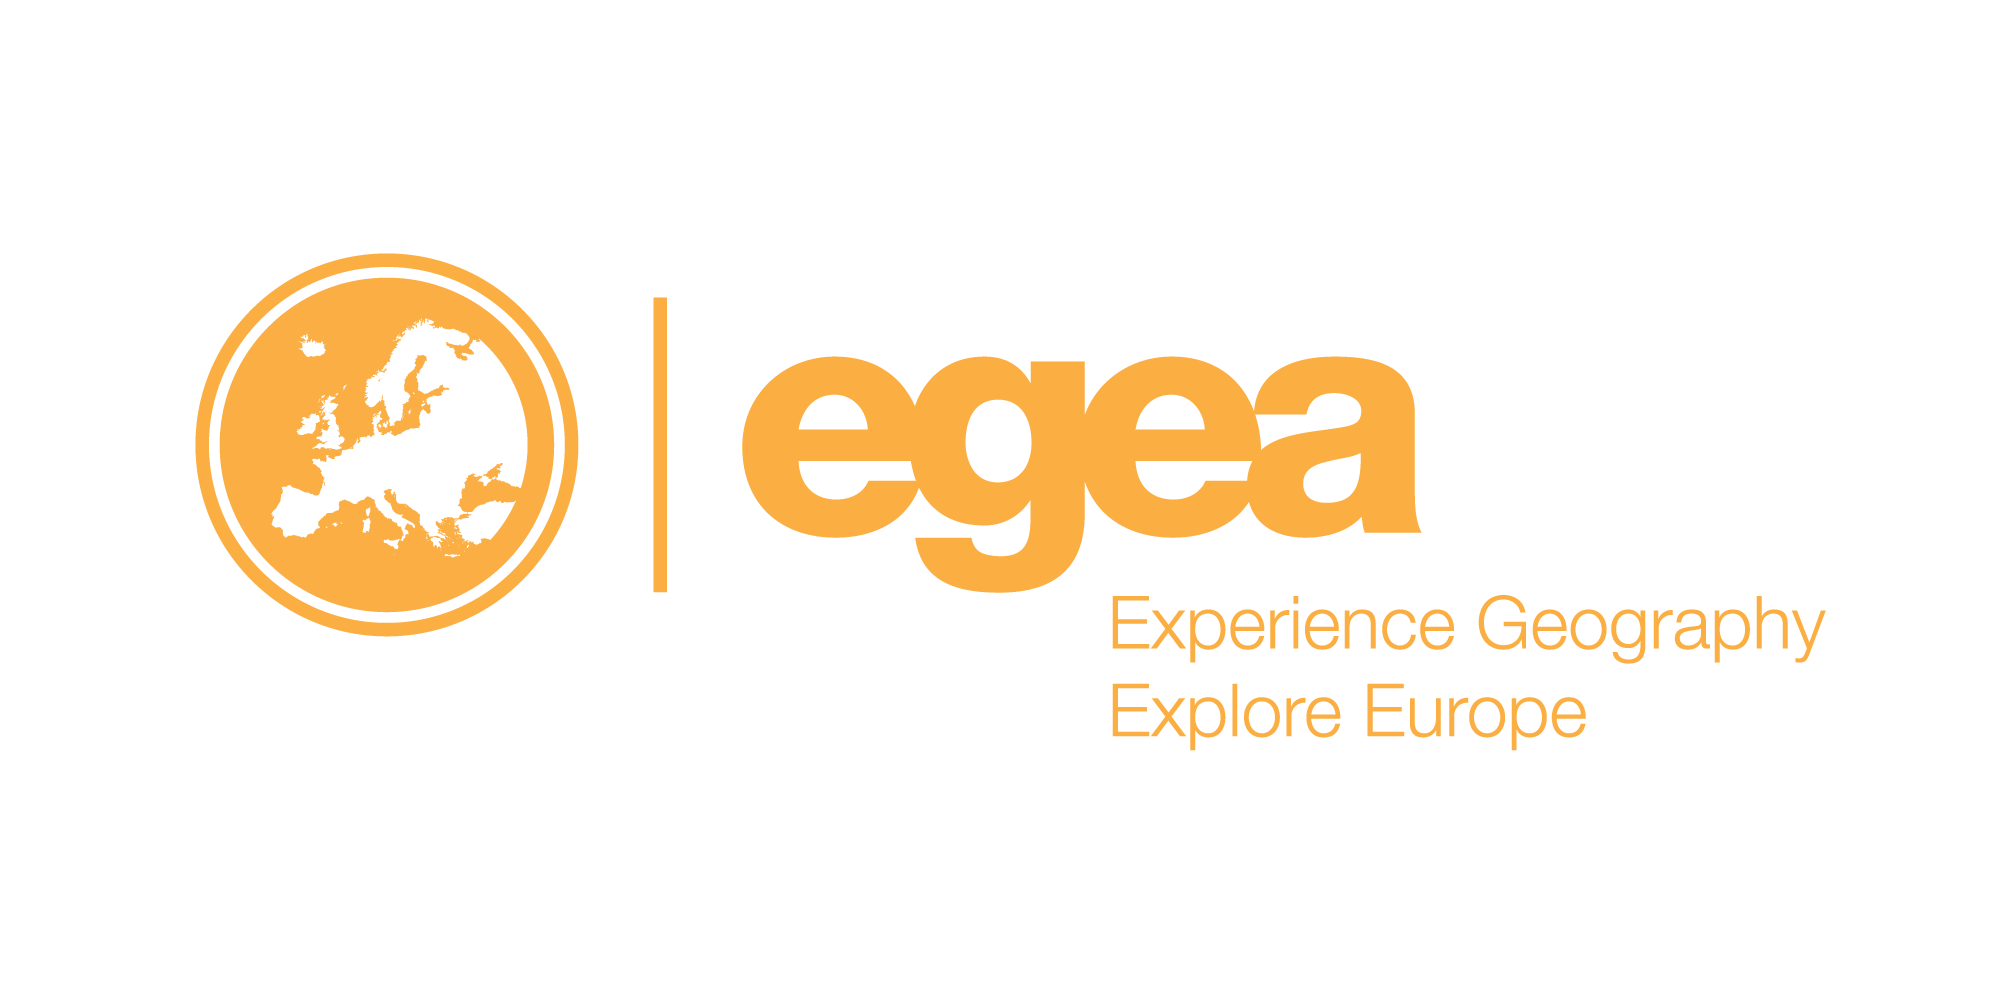 European Geographers Association for Students and Young Geographers